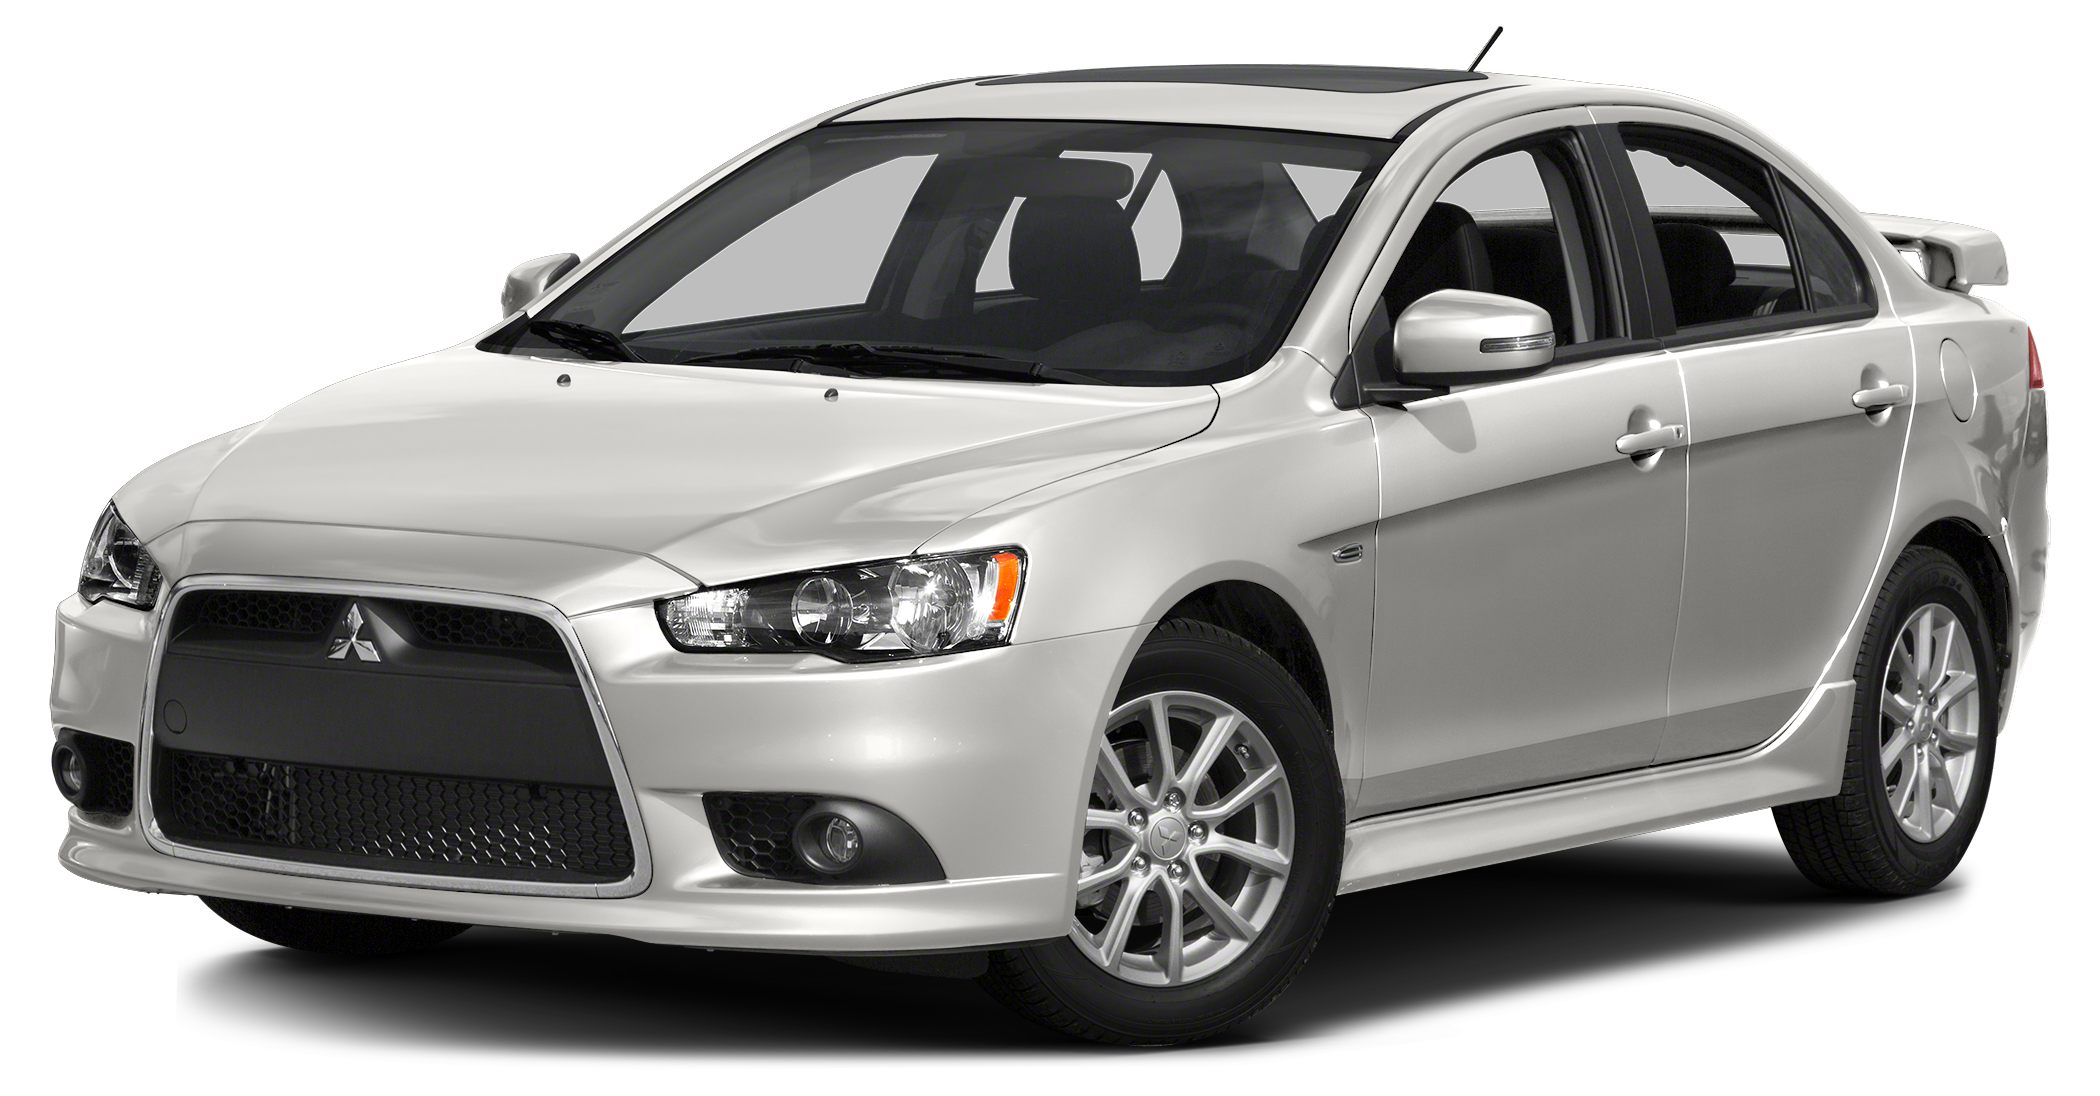 2015 Mitsubishi Lancer Ralliart 2015 Mitsubishi Lancer Ralliart in Wicked White ONE OWNER an